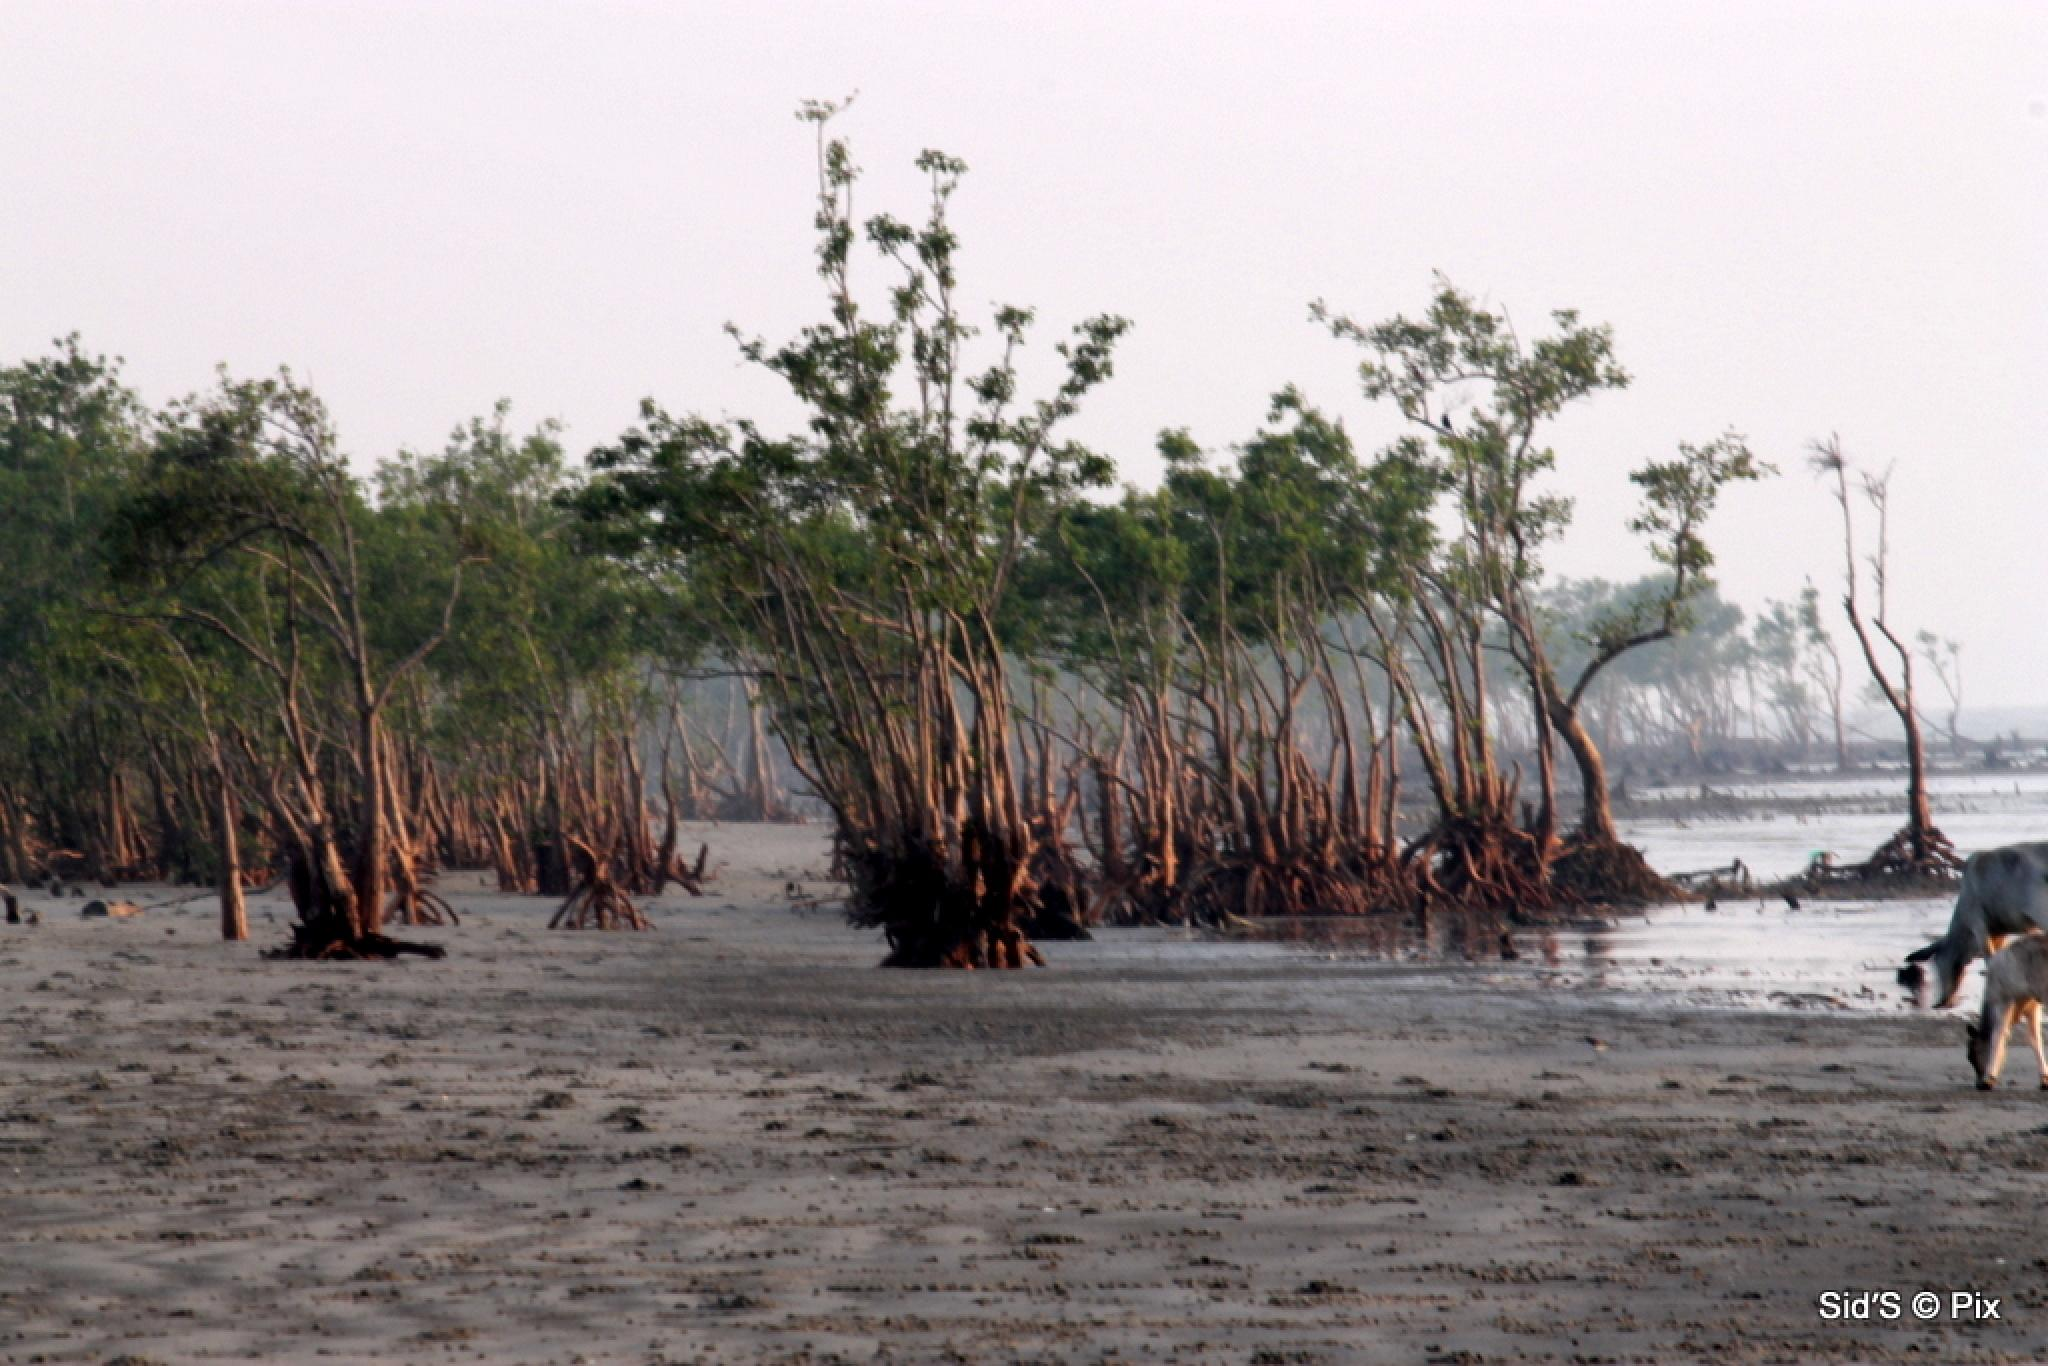 The Mangrove Forest Begins by Siddharth Sanyal